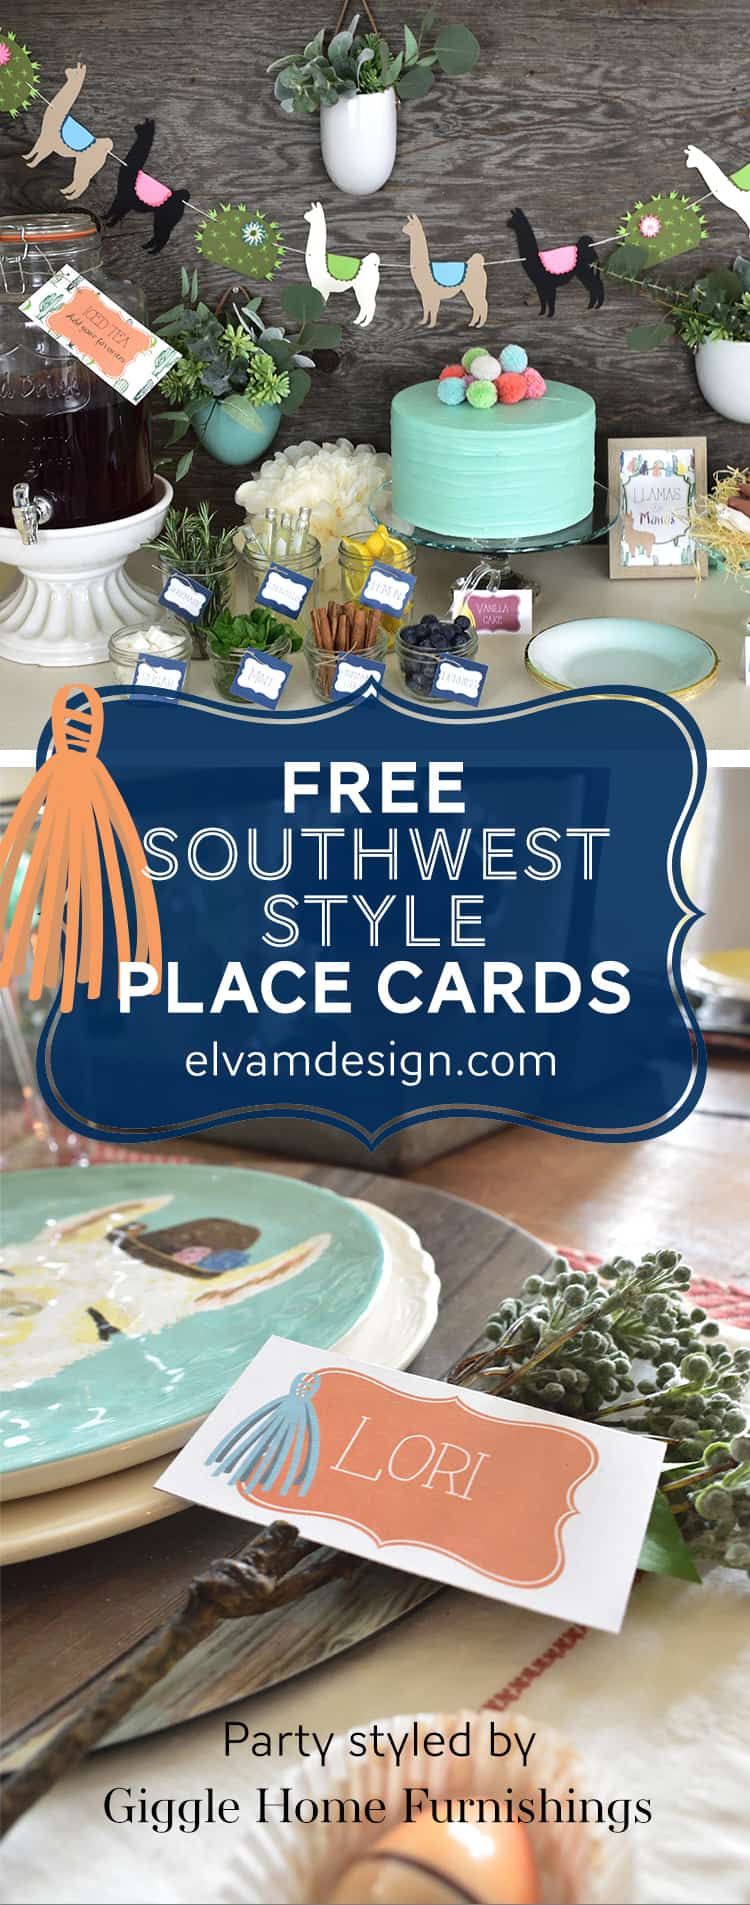 Free Southwest Style Place Cards from Elva M Design Studio.